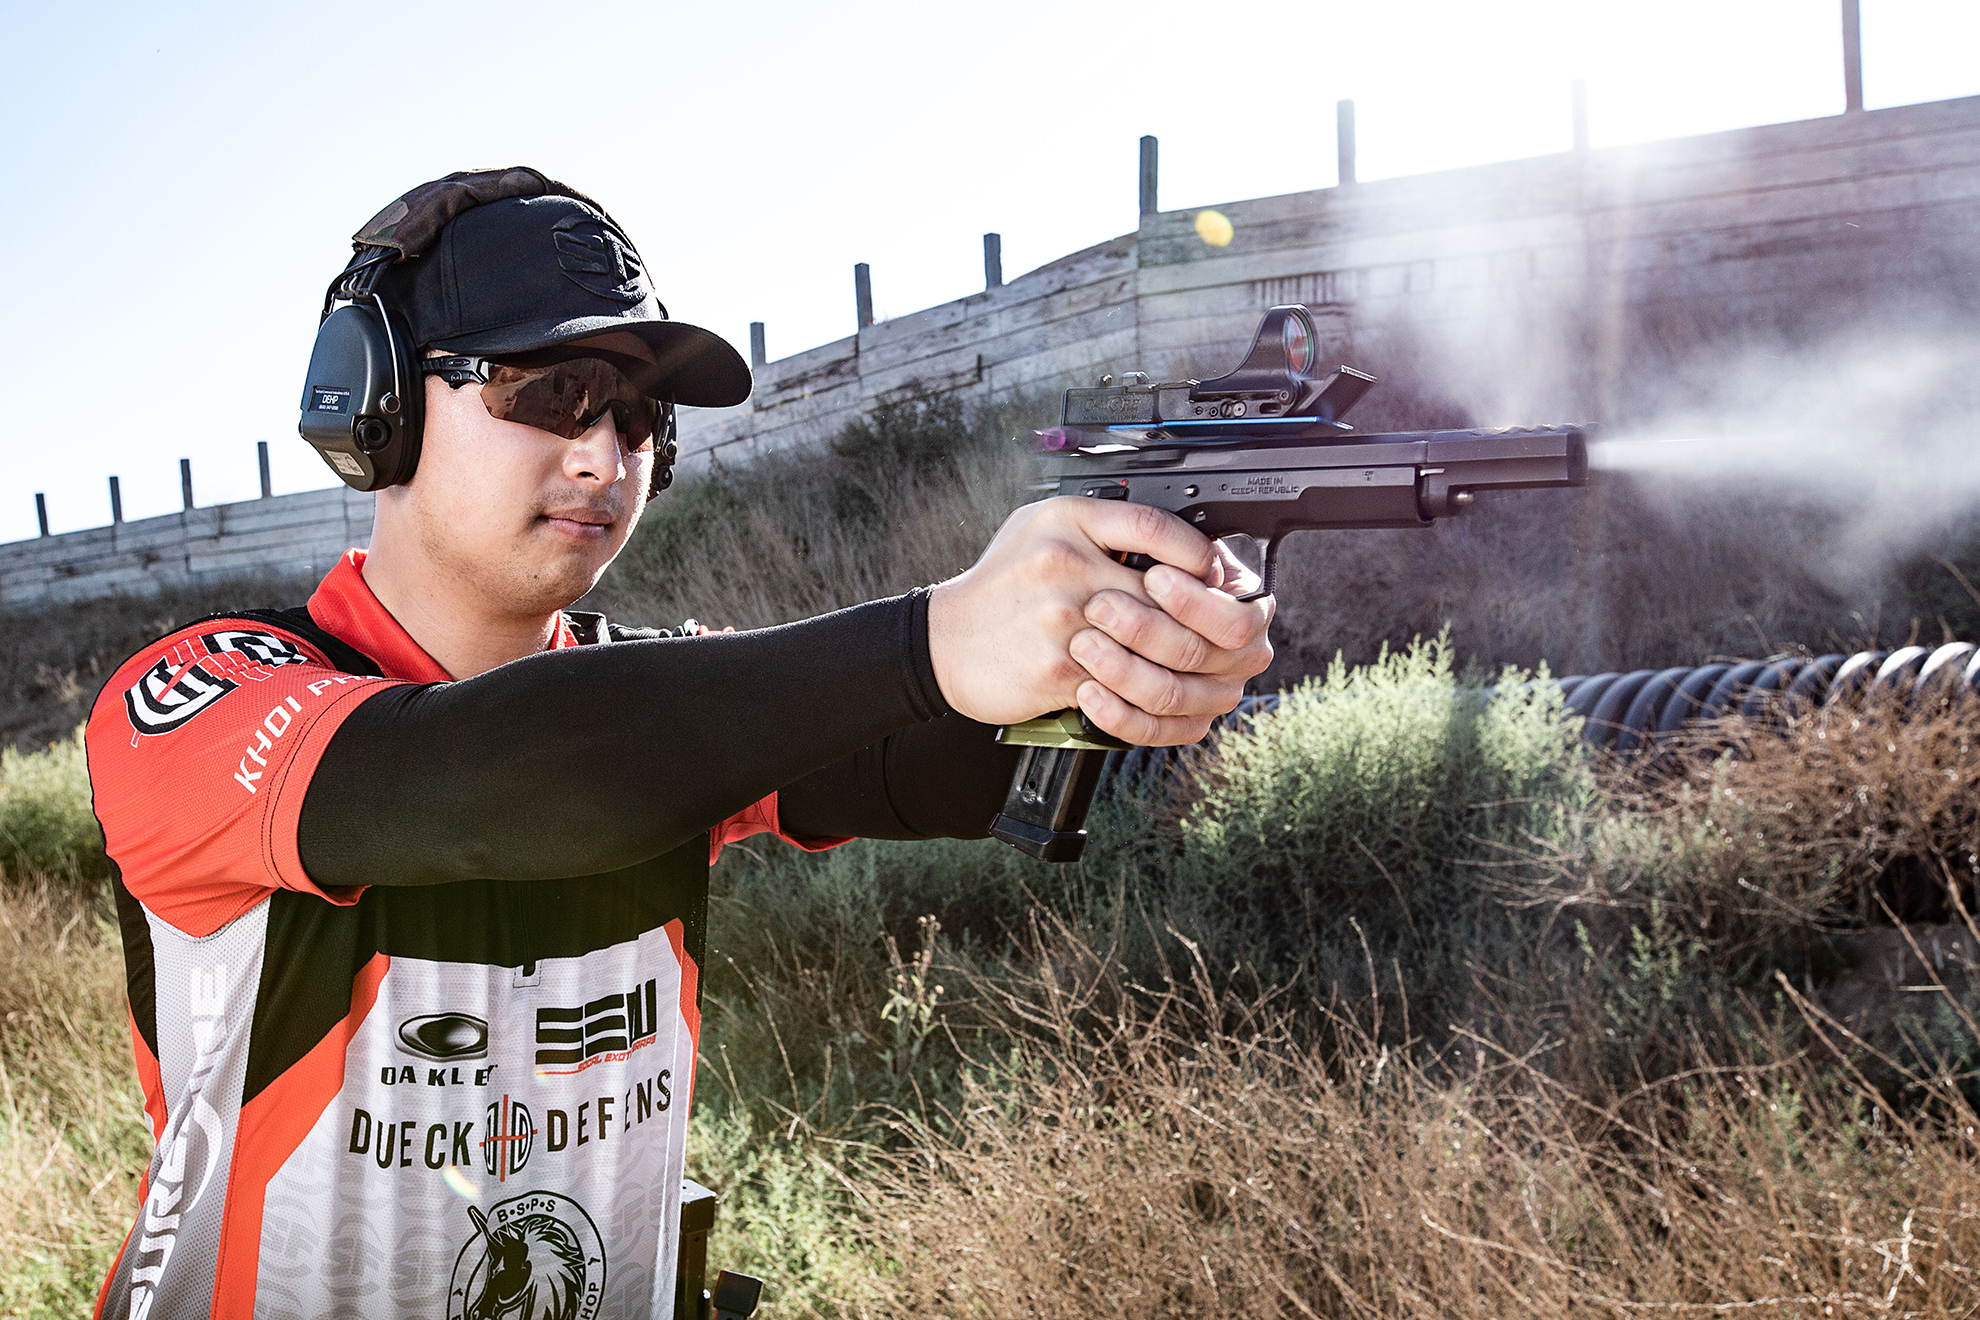 Khoi Pham of Team SureFire